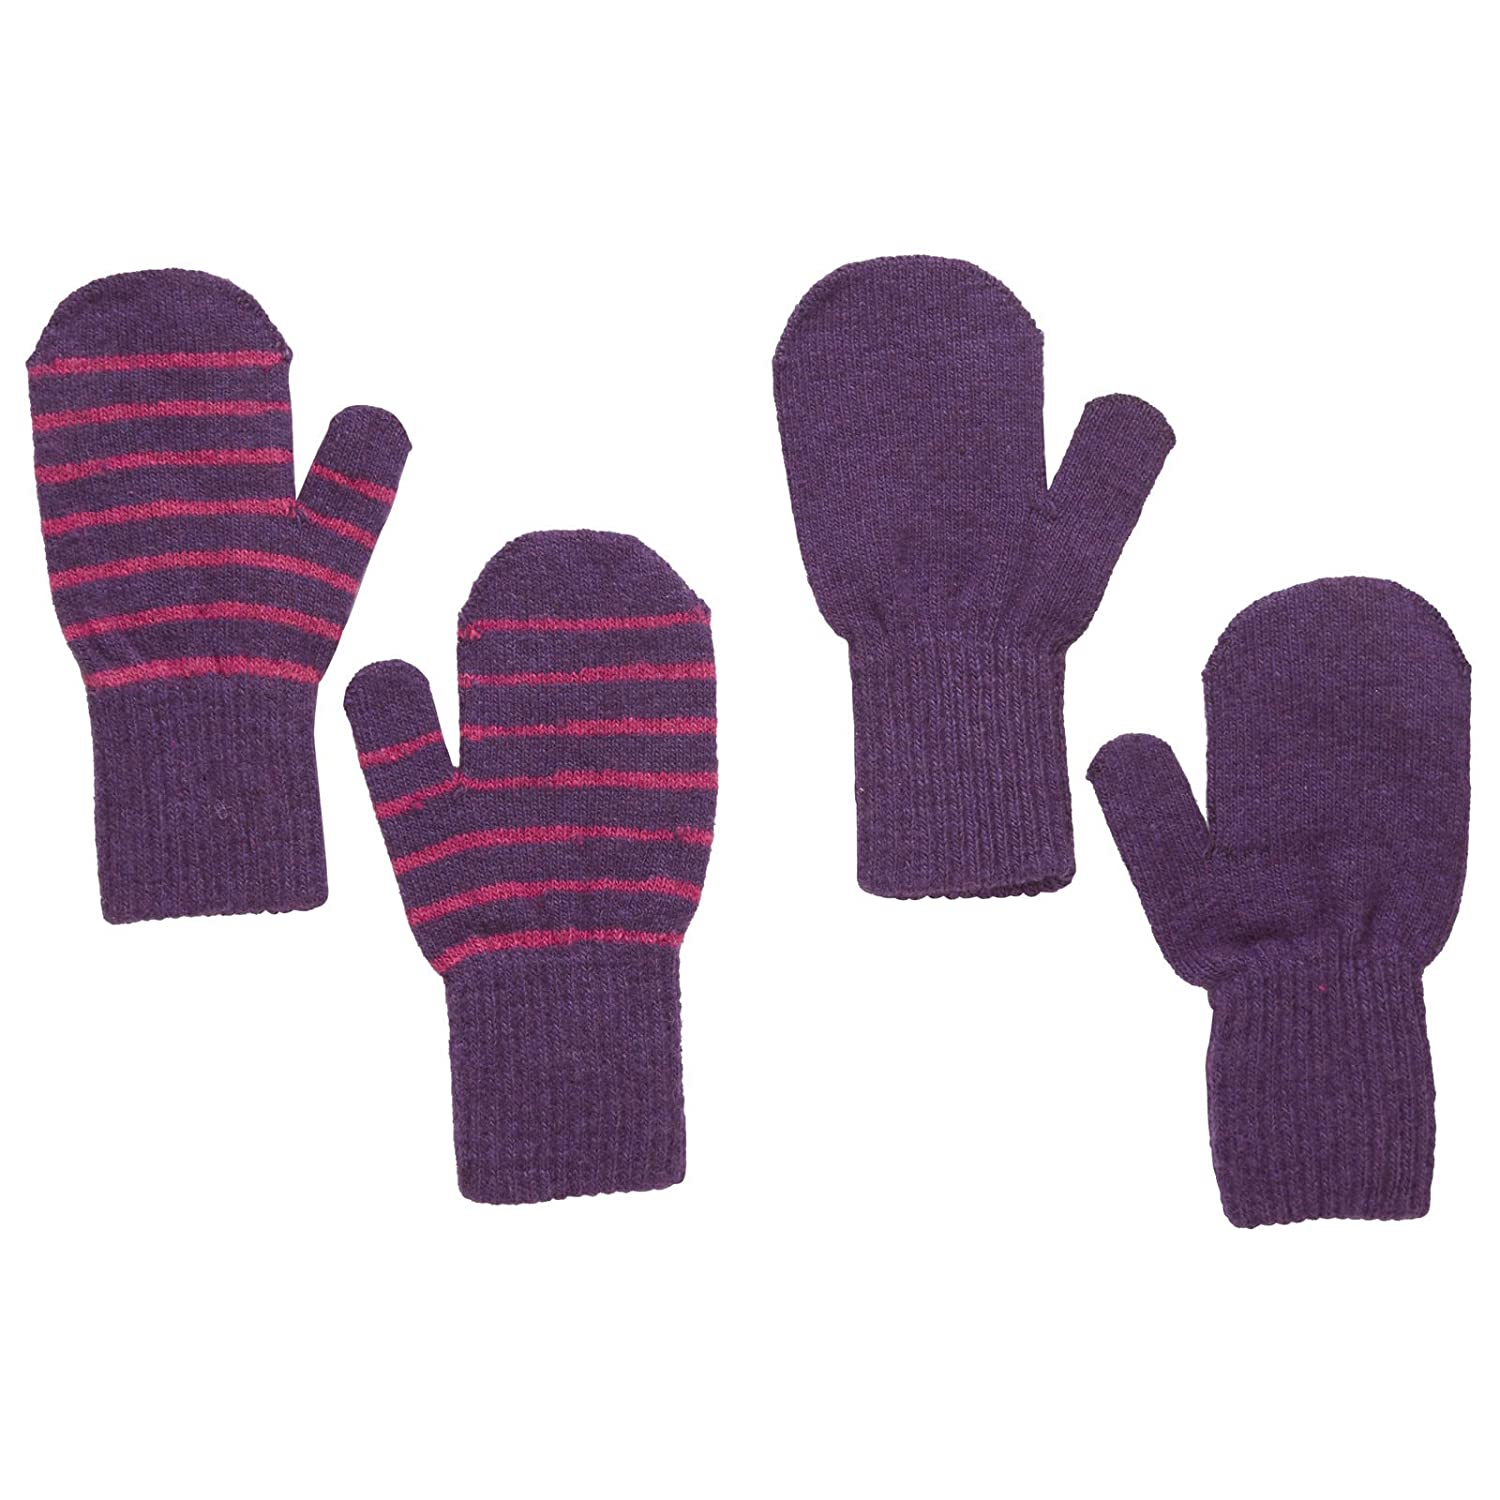 Baby-Toddler Mittens 2-Pack (12-24 Months)